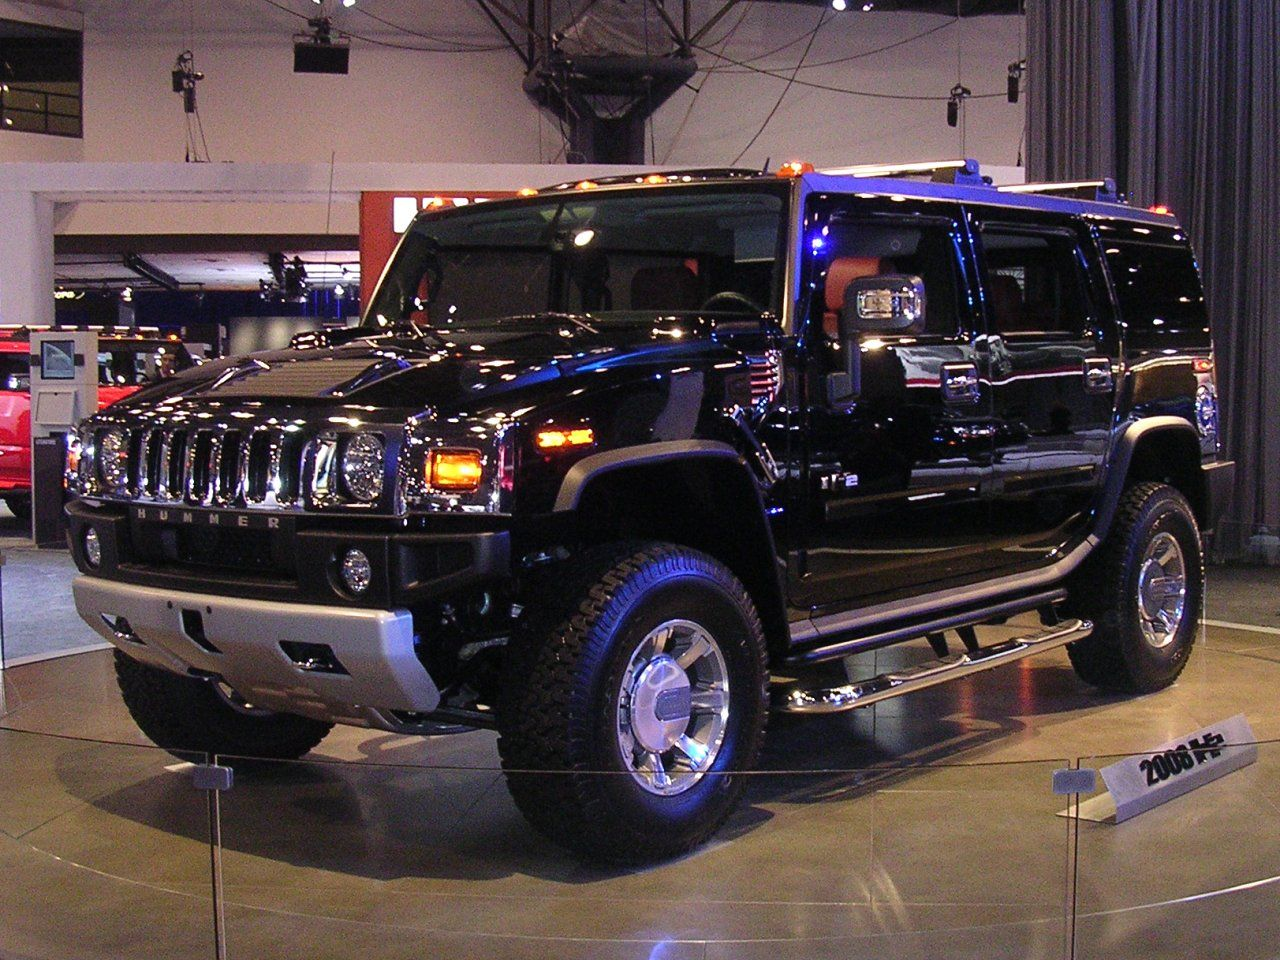 Hummer original army vehicle to hit the streets the sut is considered a pick up truck for its abilities to haul cargo with an extendable box to reach 6